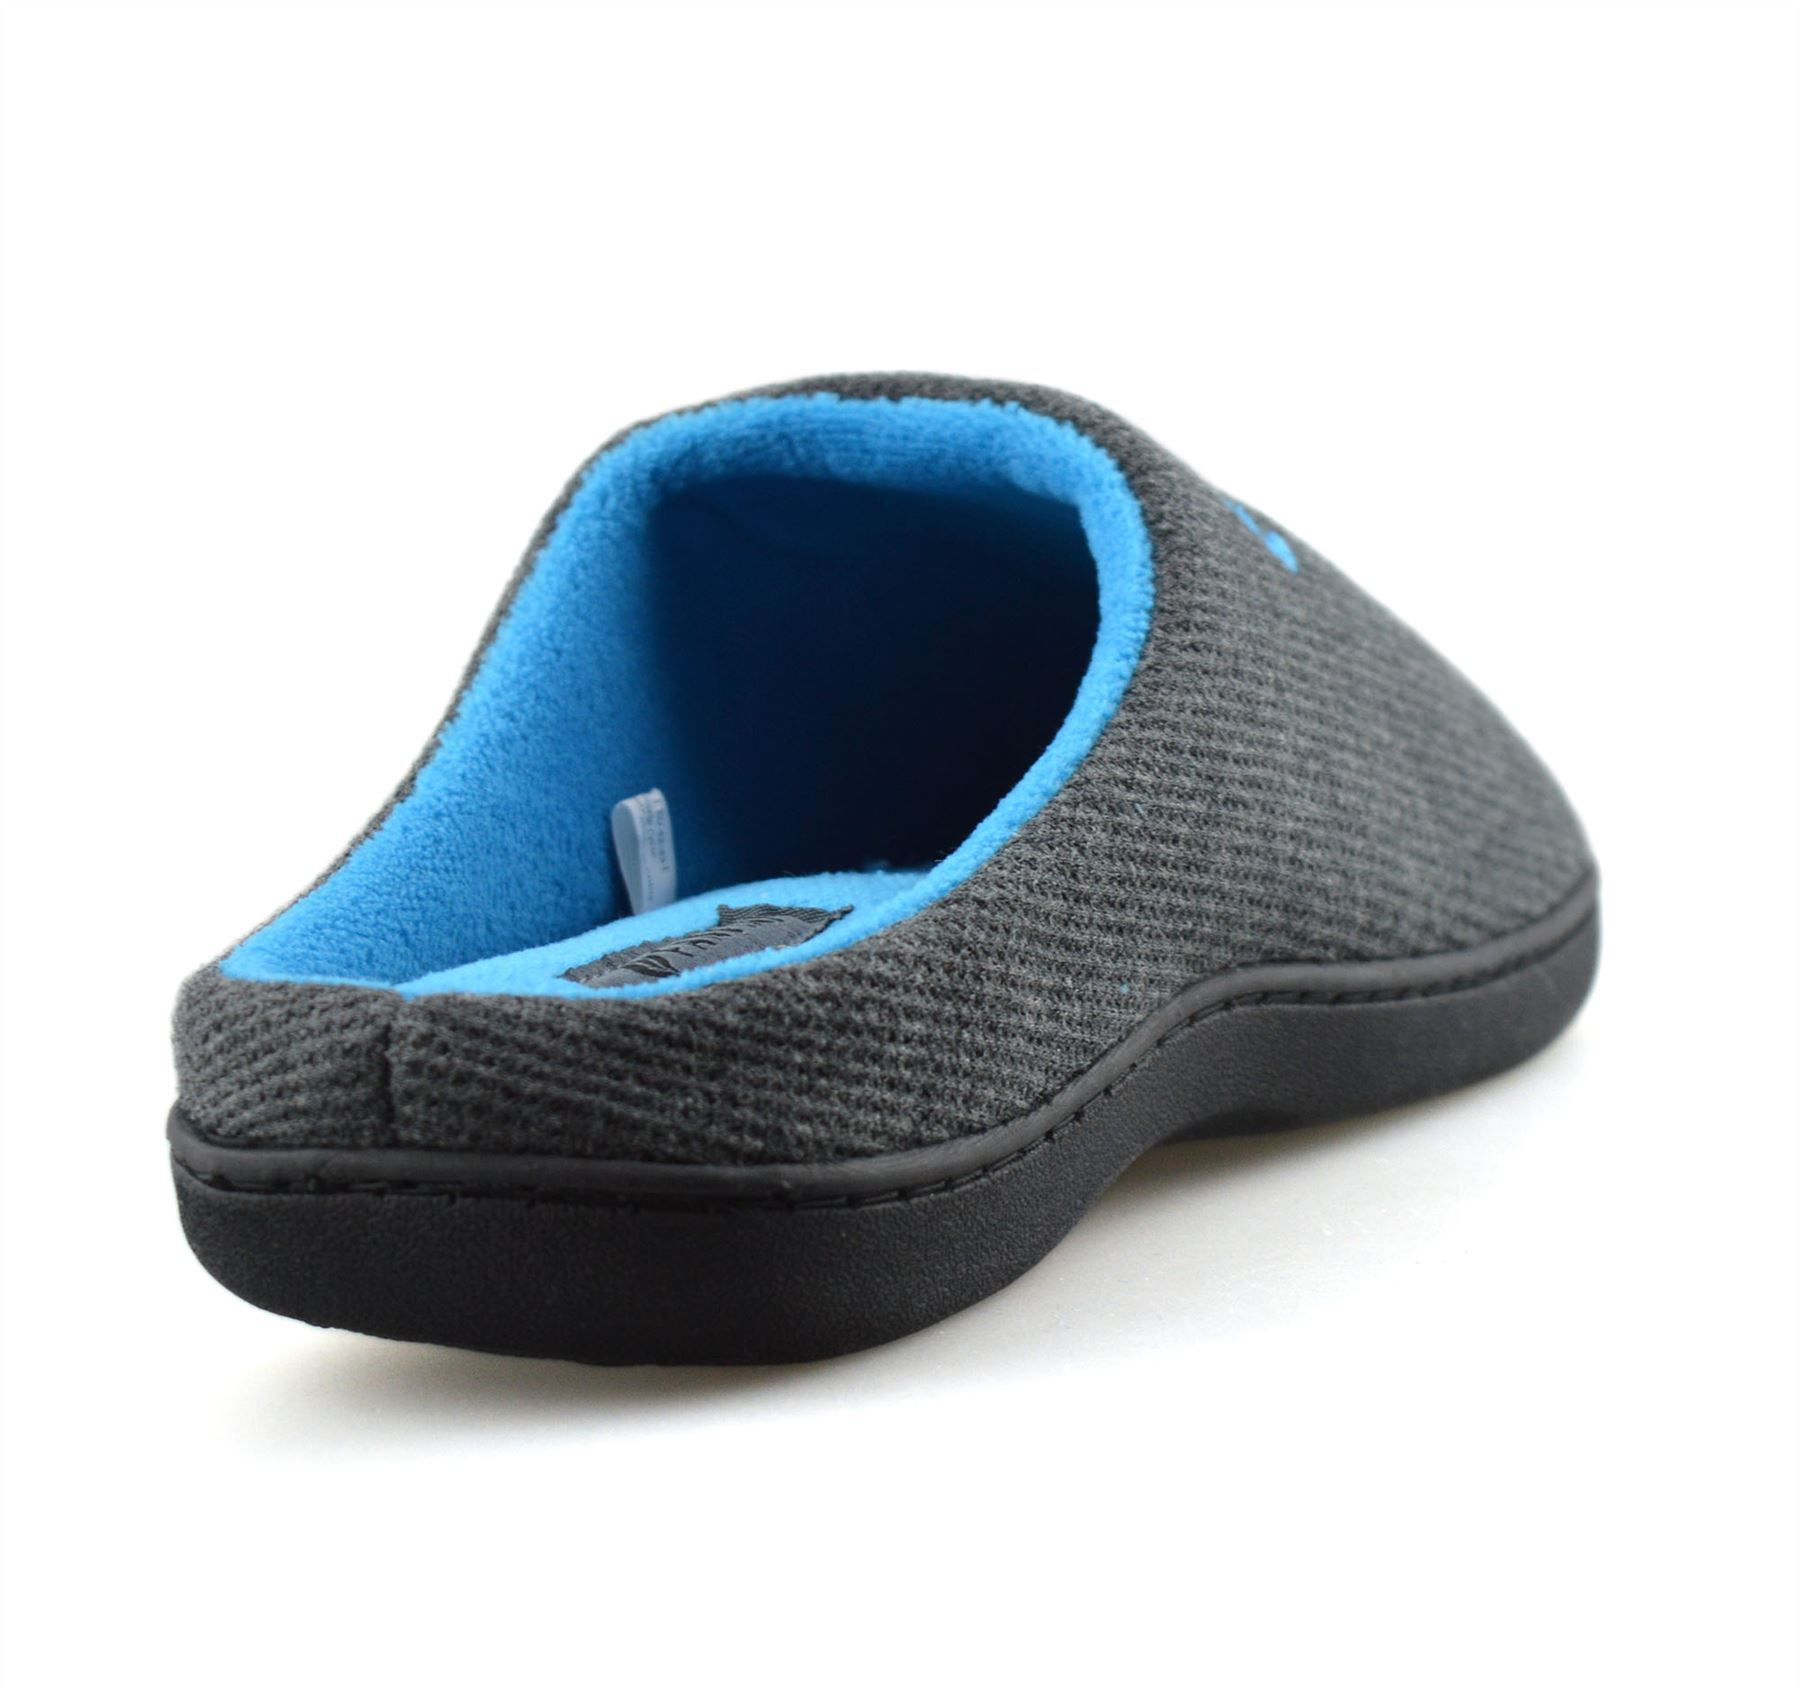 Mens-Memory-Foam-Warm-Fleece-Lined-Cotton-Slippers-Slip-On-Clog-Mules-Shoes-Size thumbnail 22